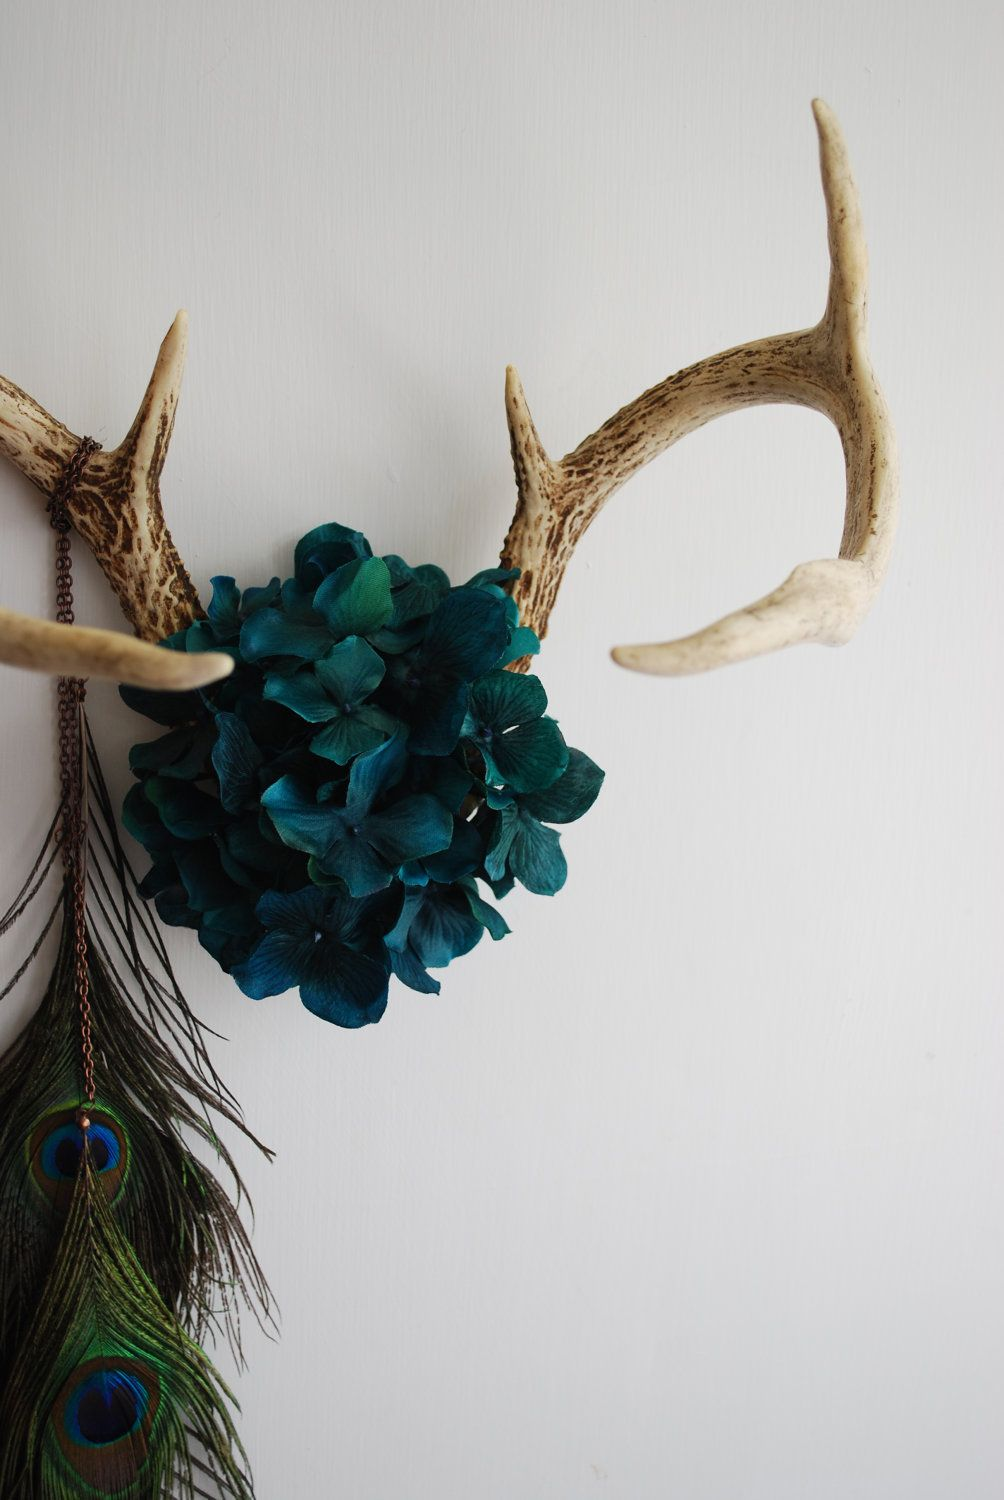 Deer Antlers With Flowers U0026 Peacock Feathers   Wall Hanging Taxidermy 7  Point Rack Home Decor Teal Hydrangea Jewelry Necklace Holder